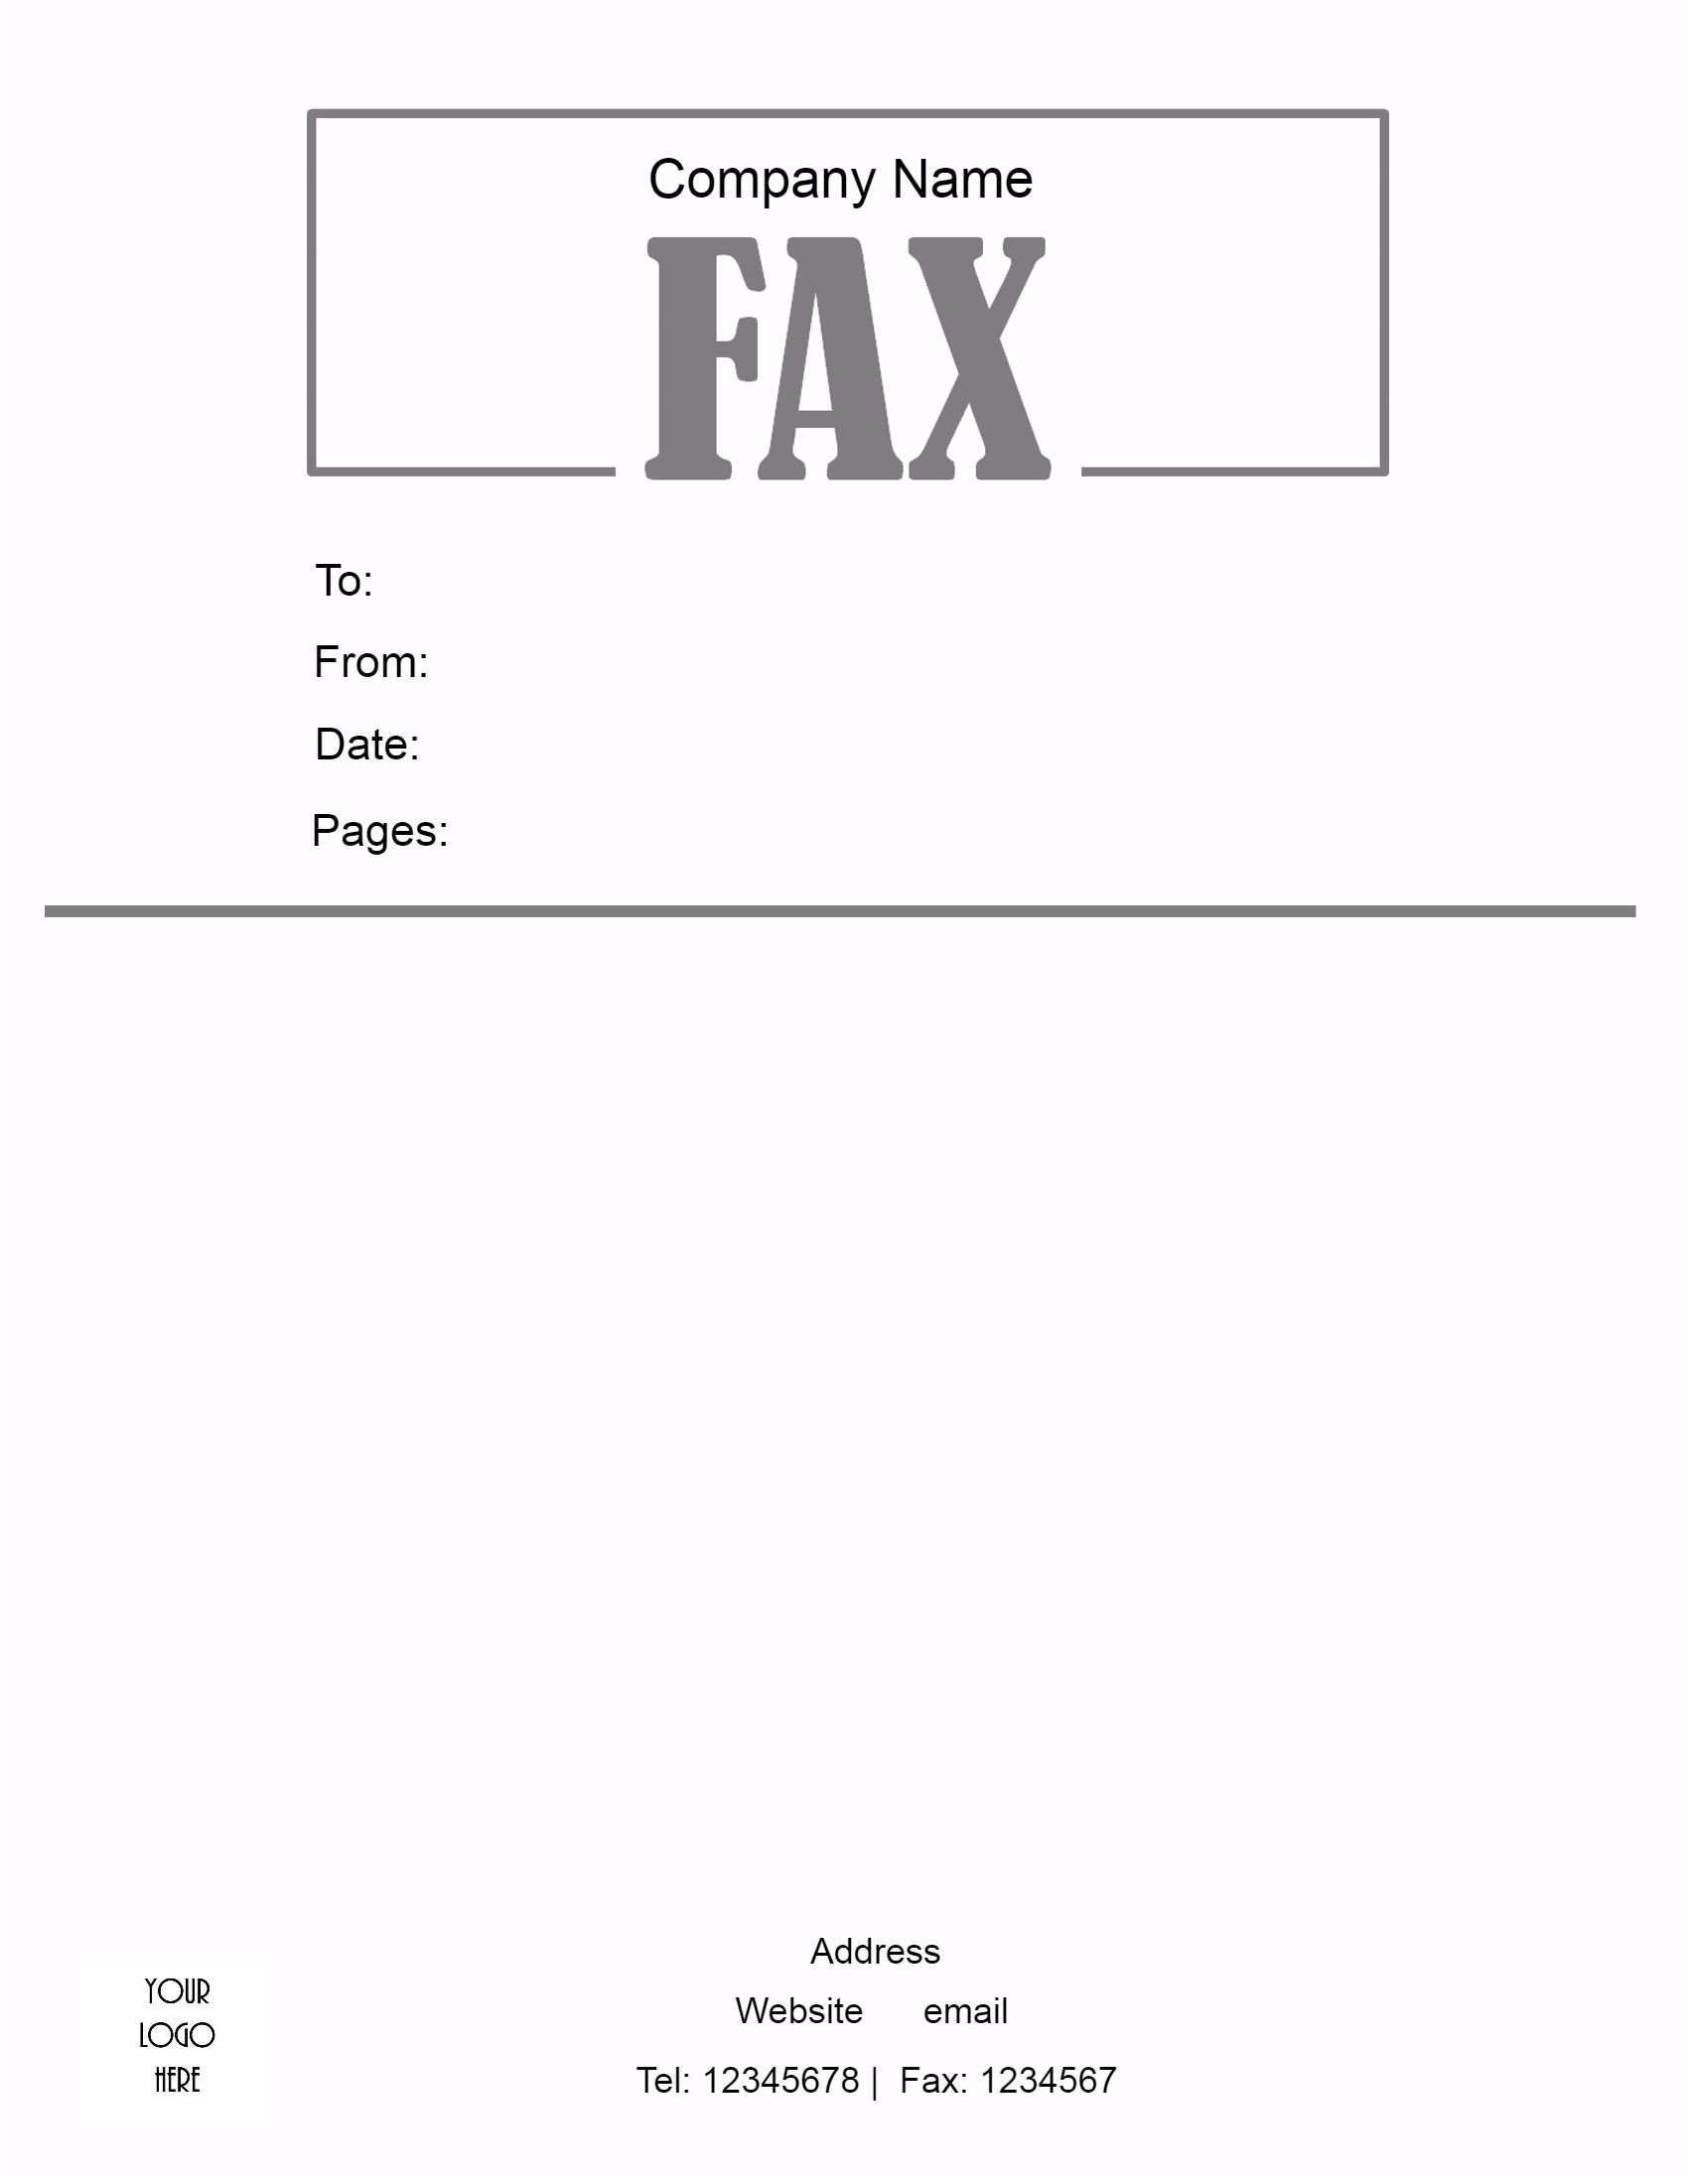 Awesome Free Fax Cover Sheet